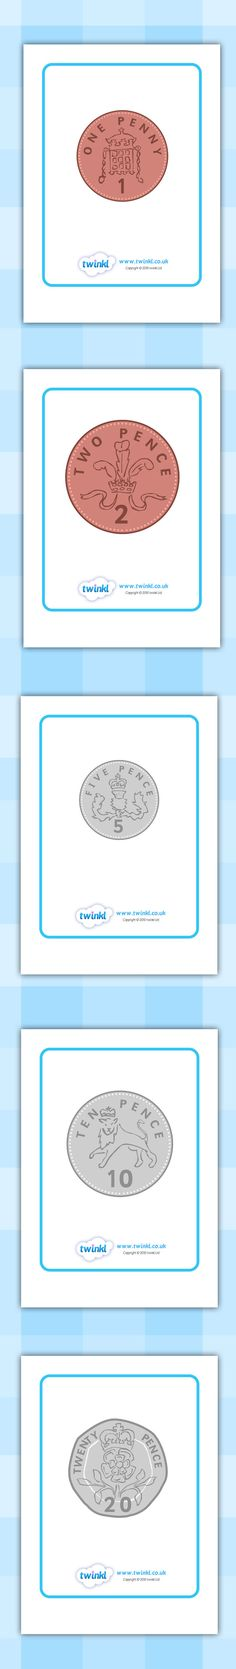 Twinkl Resources >> British Coin Display Posters >> Printable resources for Primary, EYFS, KS1 and SEN.  Thousands of classroom displays and teaching aids! Counting, Money, Coins, Numeracy, Currency, Maths